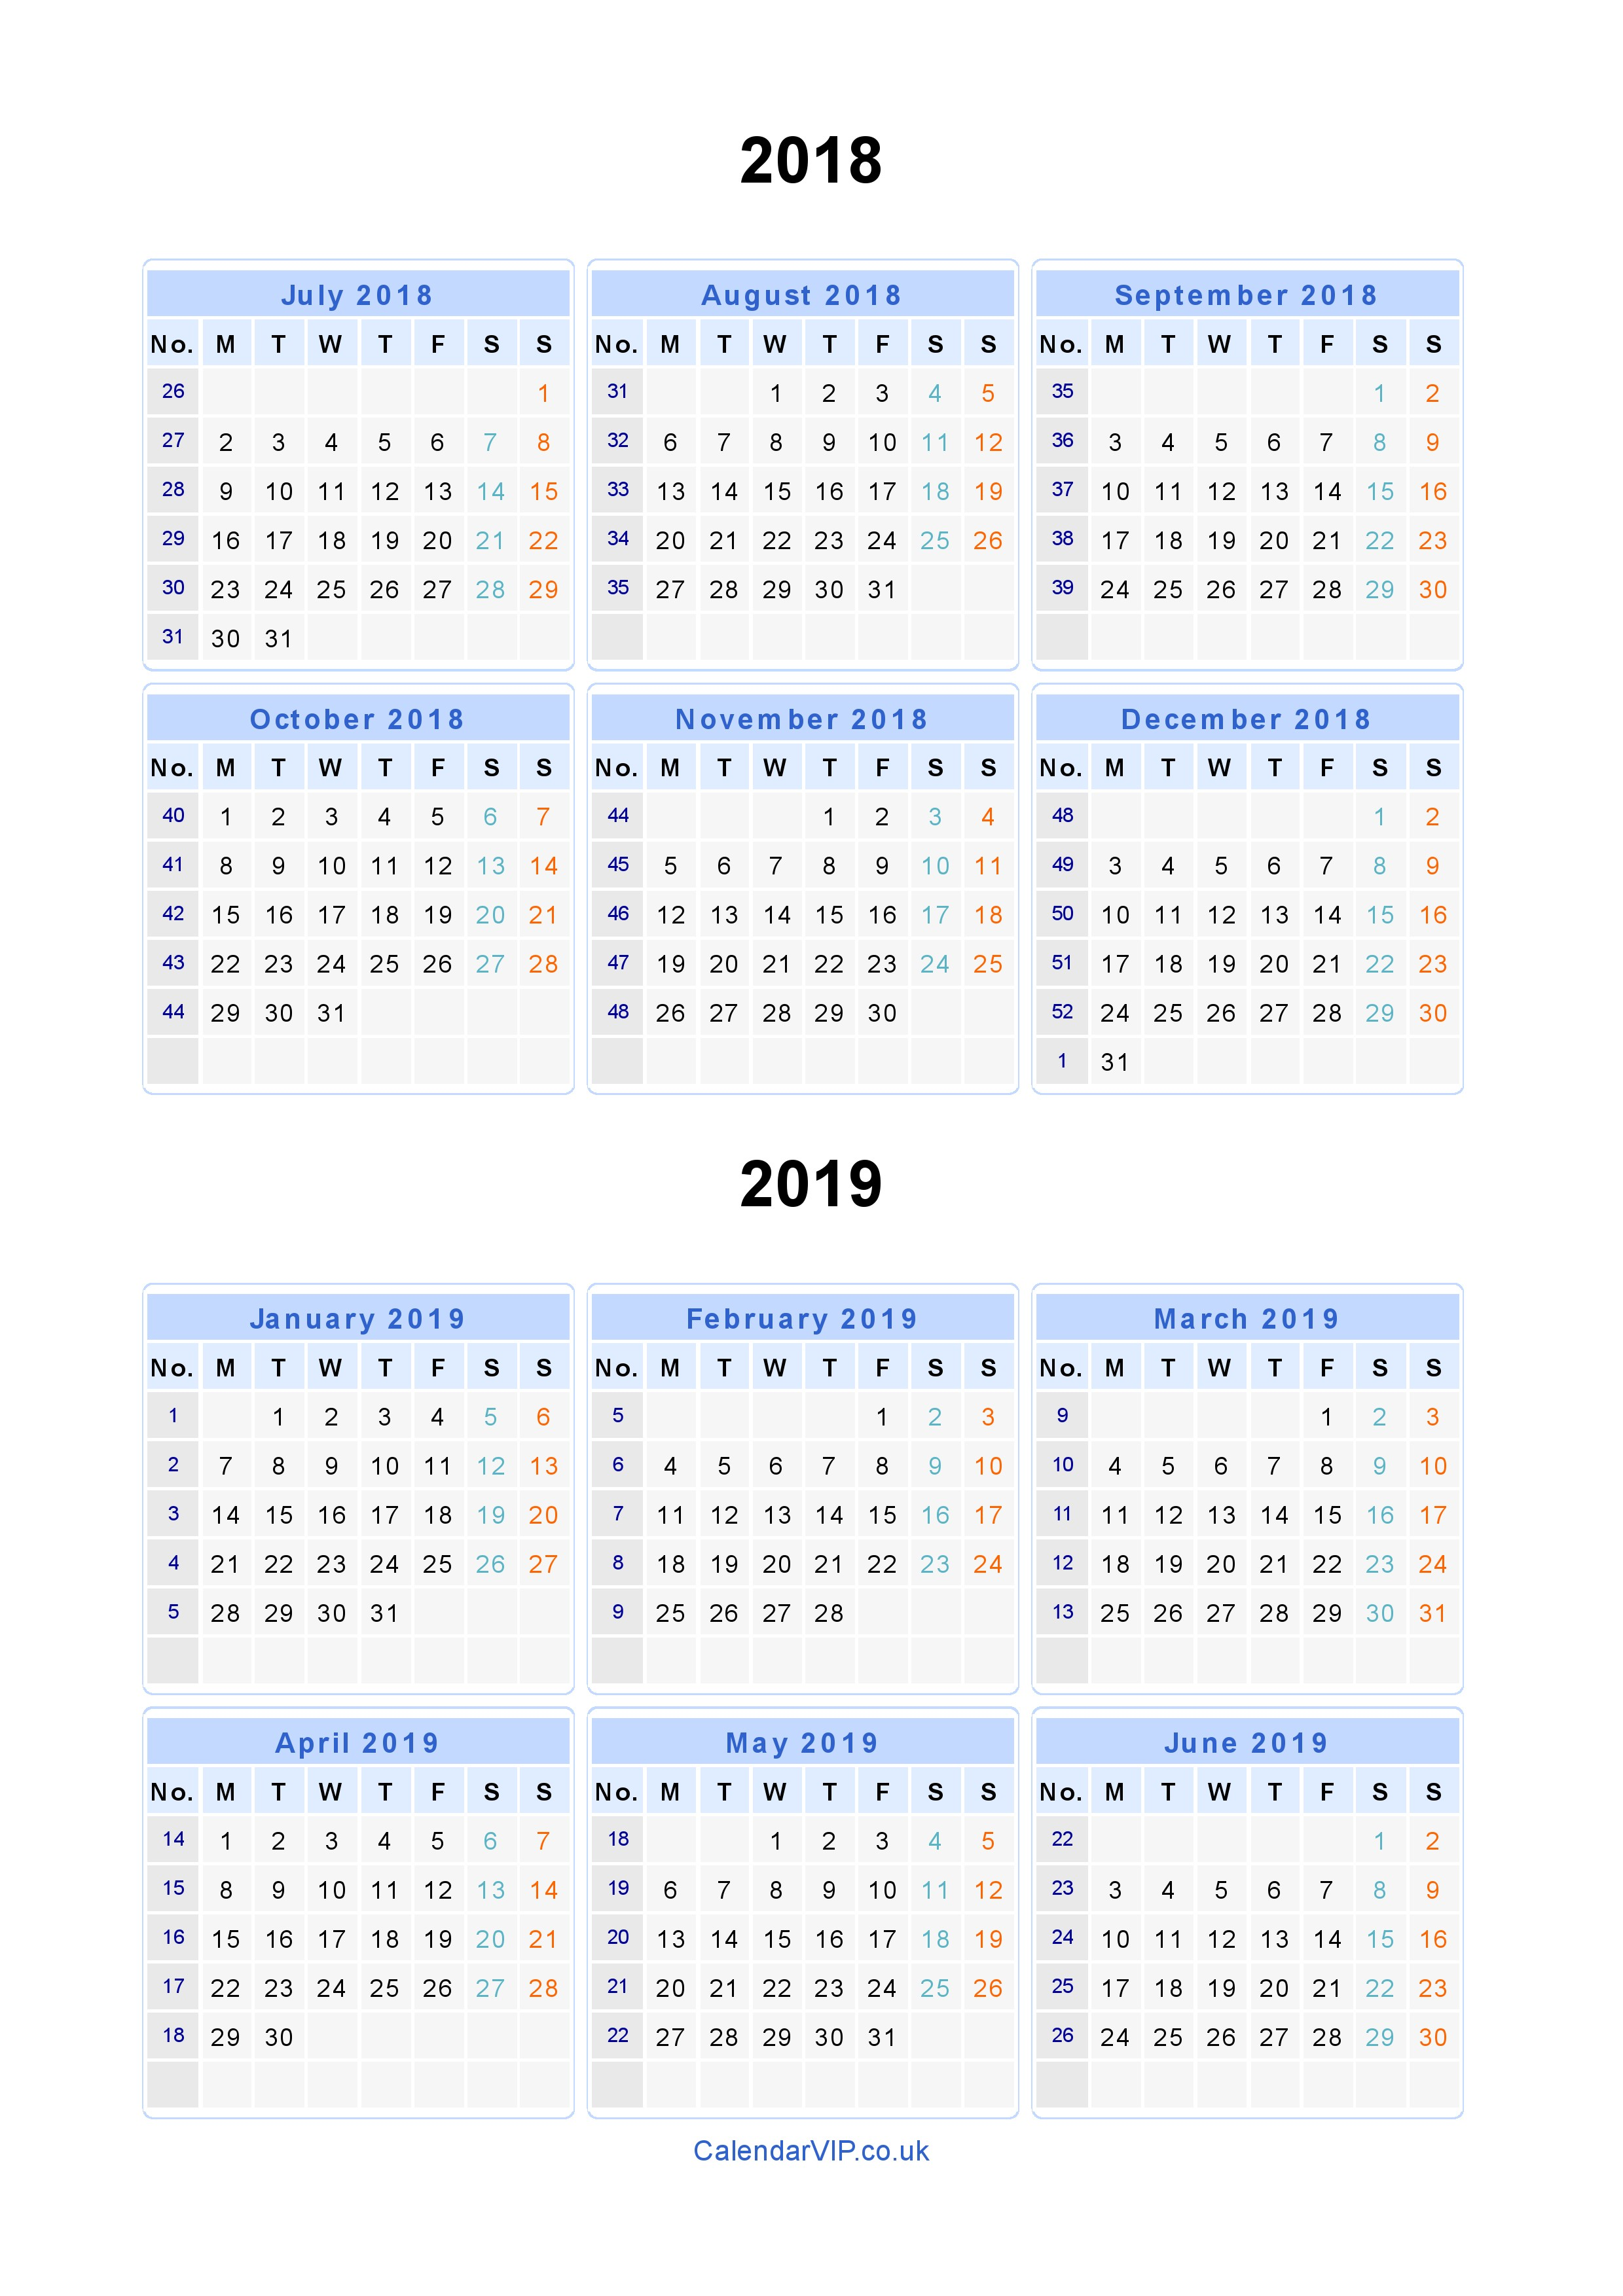 Calendar For Year 2019 United Kingdom With Split Calendars 2018 From July To June